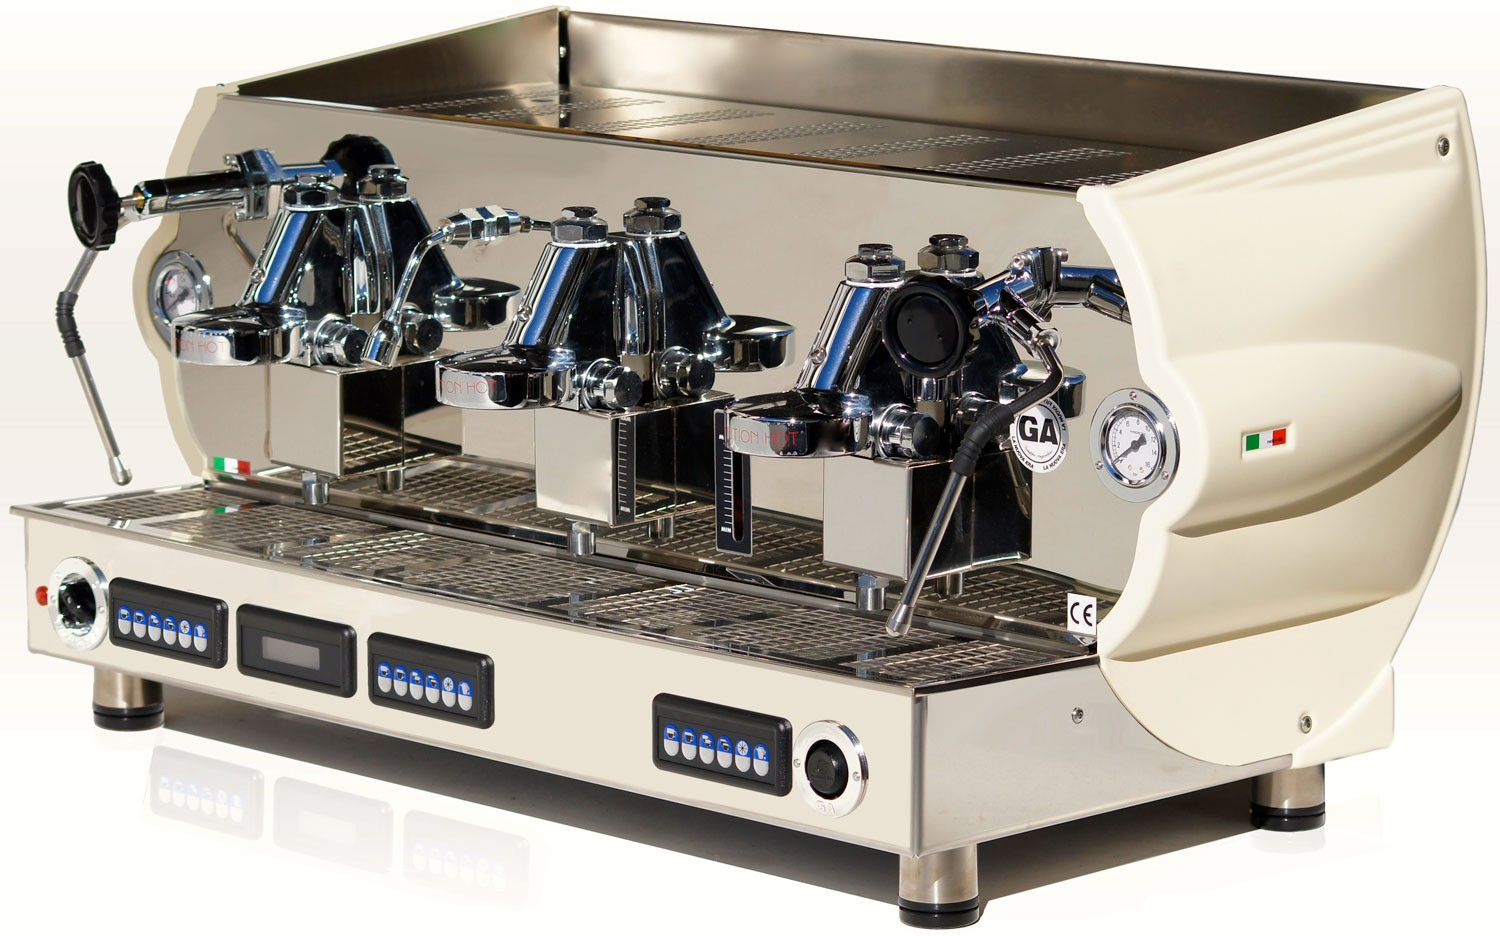 La NUova Era Altea is a commercial espresso coffee machine for large volume cafe's